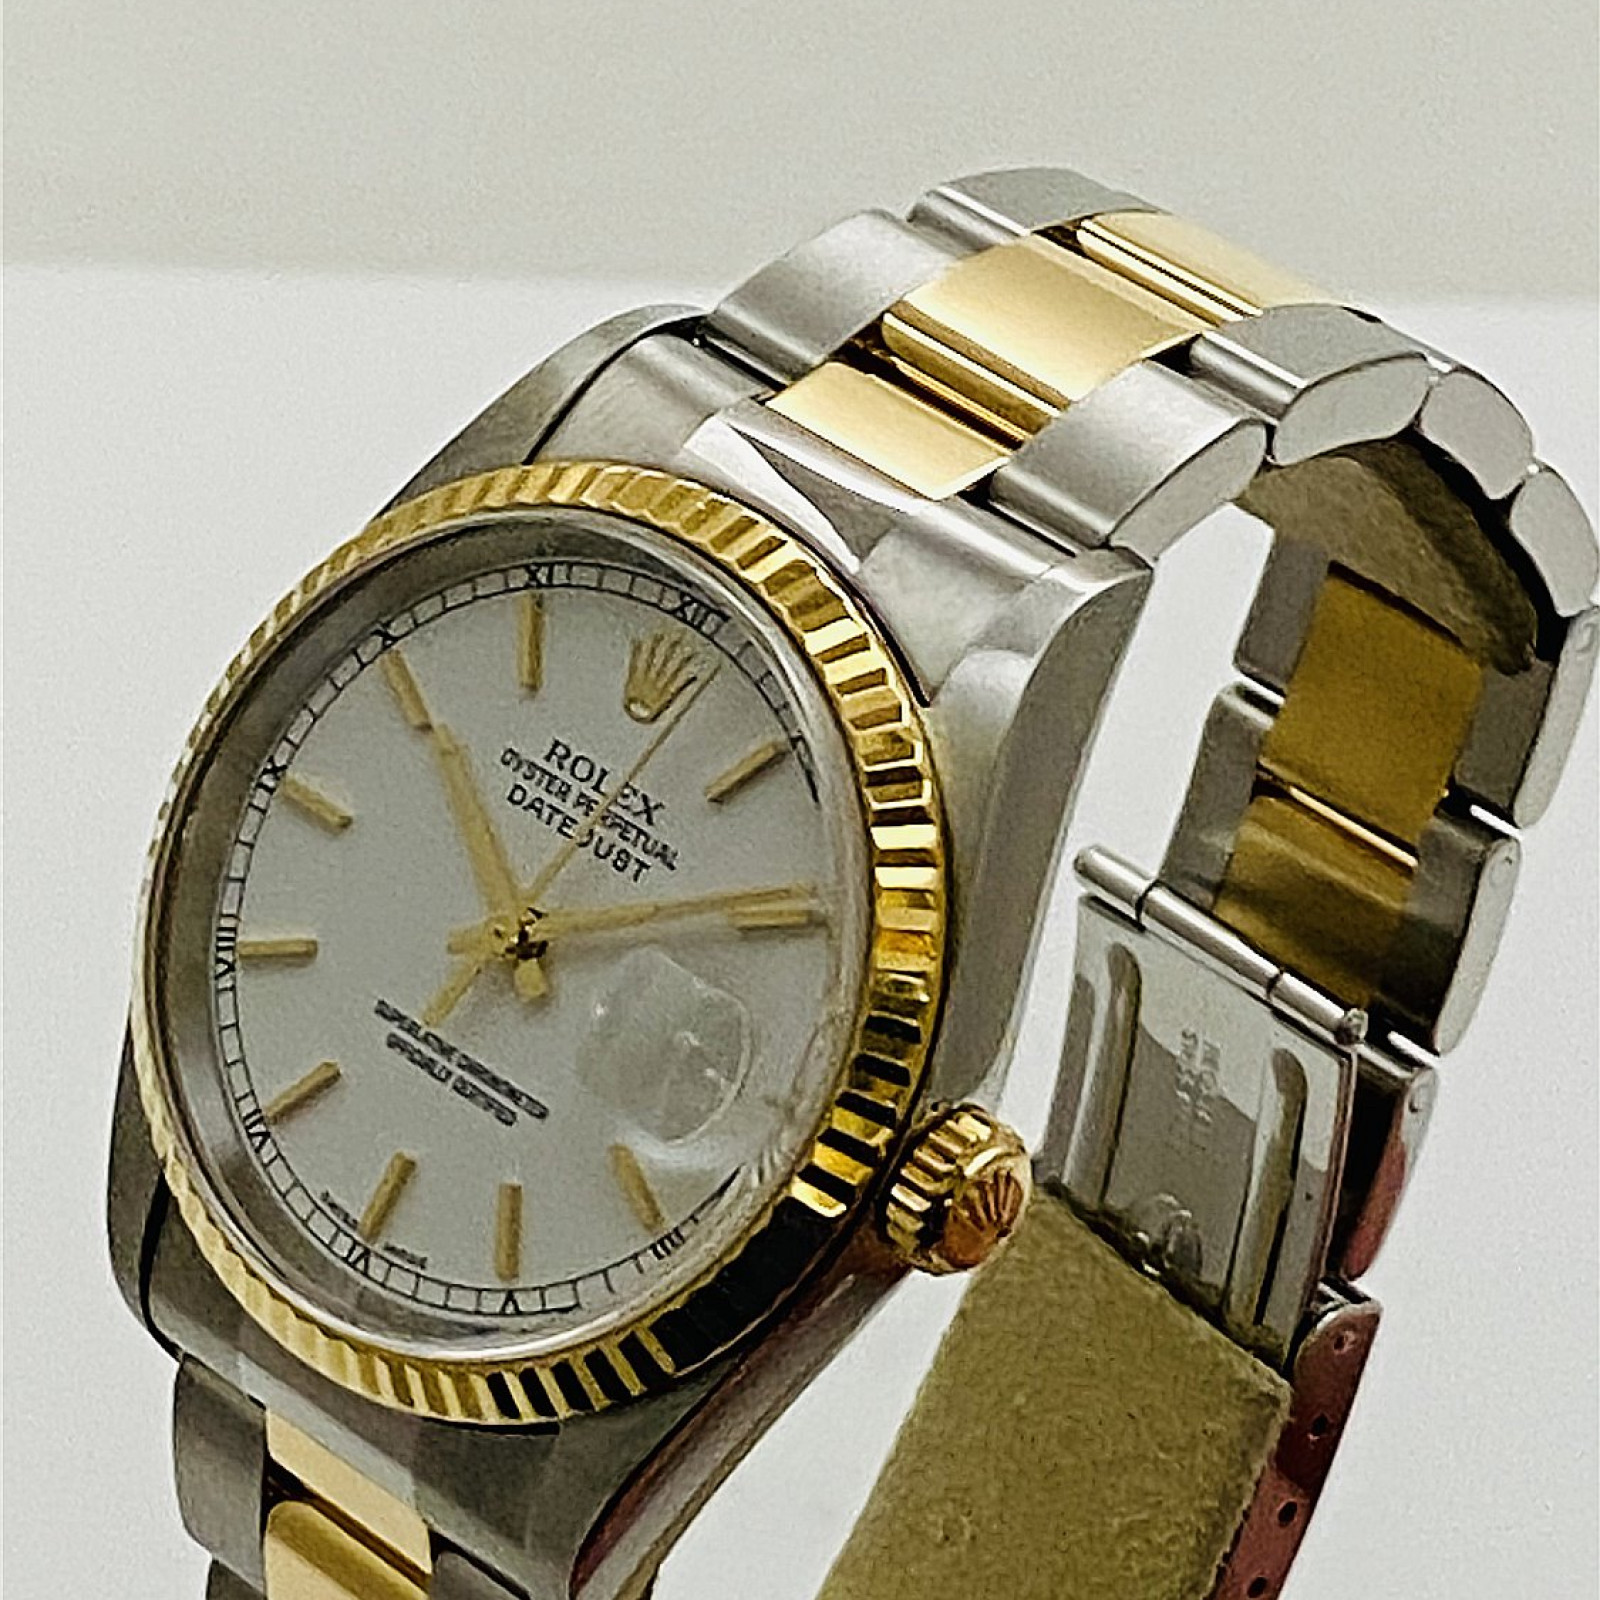 2000 Rolex Datejust 16263 Steel